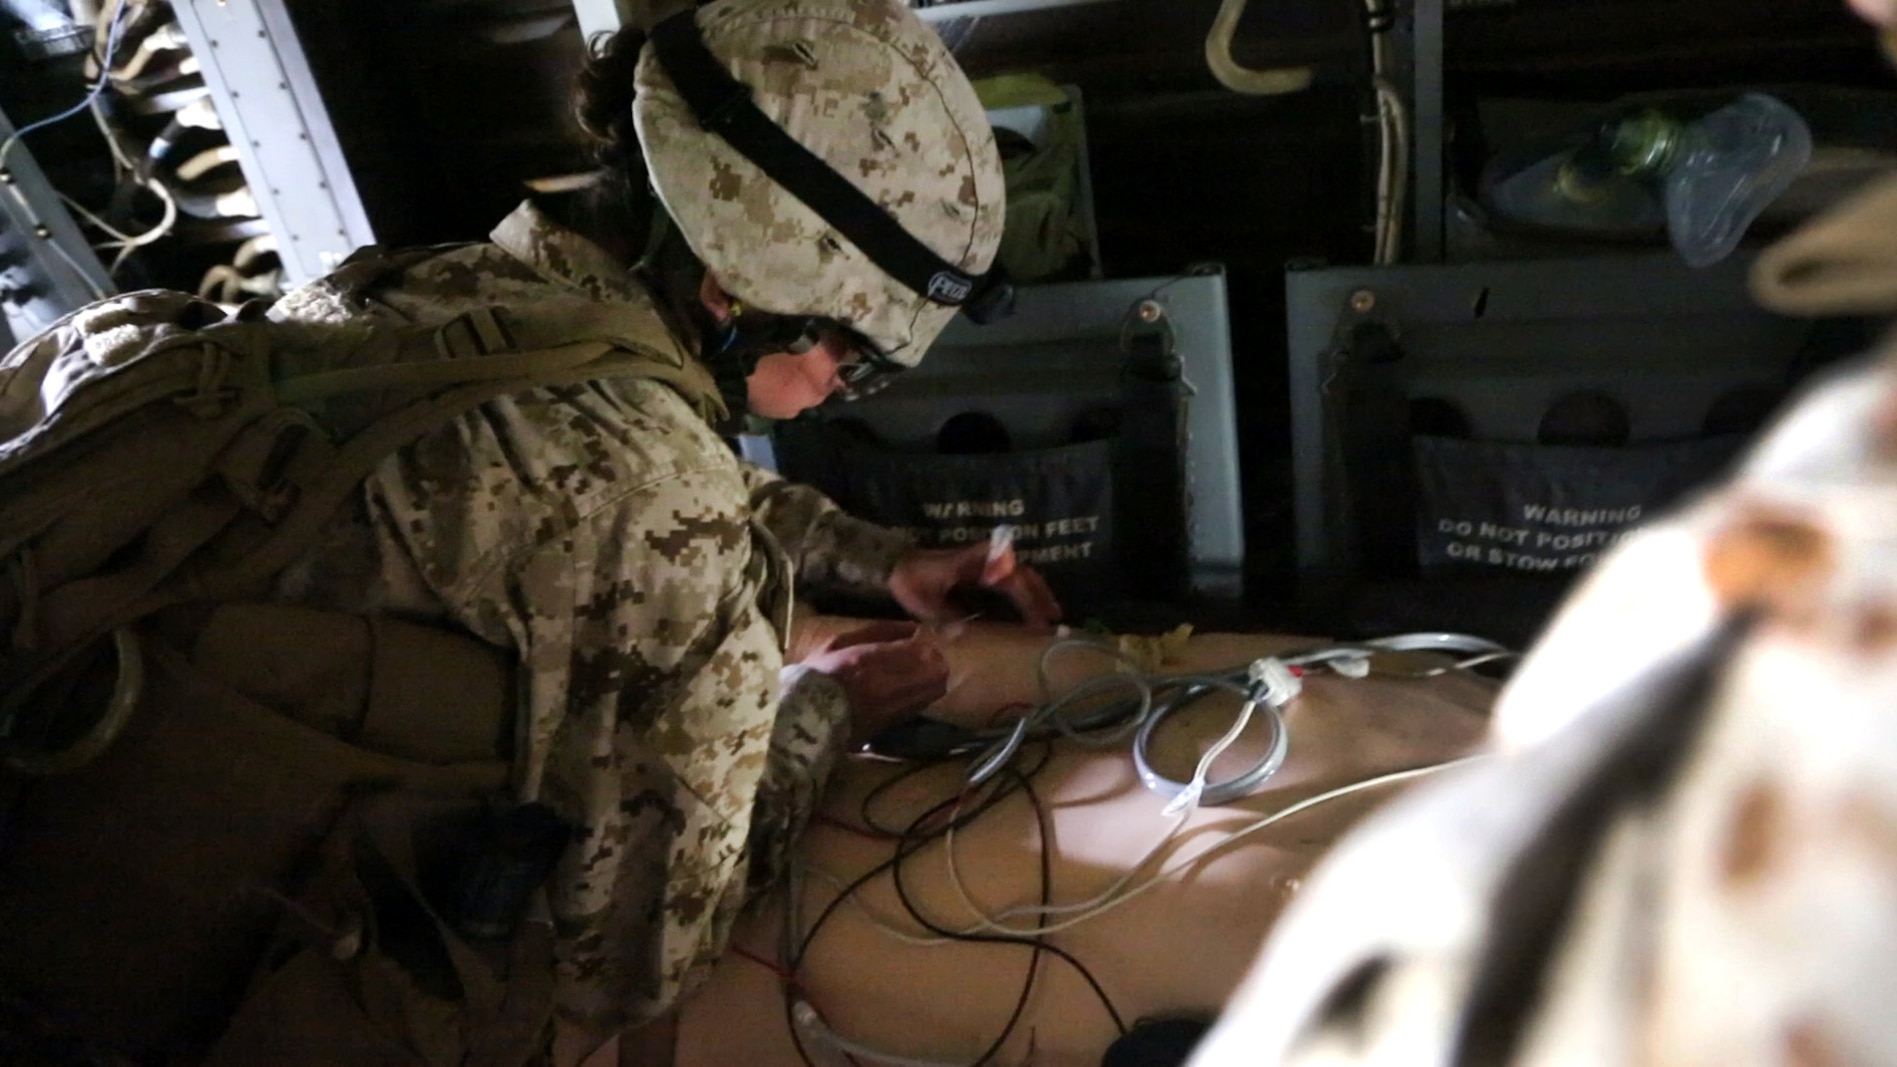 A corpsman with Alpha Surgical Company, 1st Medical Battalion, 1st Marine Logistics Group, treats a simulated casualty during an en-route care exercise aboard Camp Pendleton, Calif., Jan. 28, 2015. During the four-day exercise, corpsmen trained to prepare a Special-Purpose Marine Air-Ground Task Force group that is going to forward deploy later this year. The more than 40 corpsmen set up a shock trauma platoon facility, or mobile emergency room, to treat simulated casualties. The casualties were stabilized in the STP and then flown out via aircraft. (U.S. Marine Corps photo by Sgt. Laura Gauna/Released)